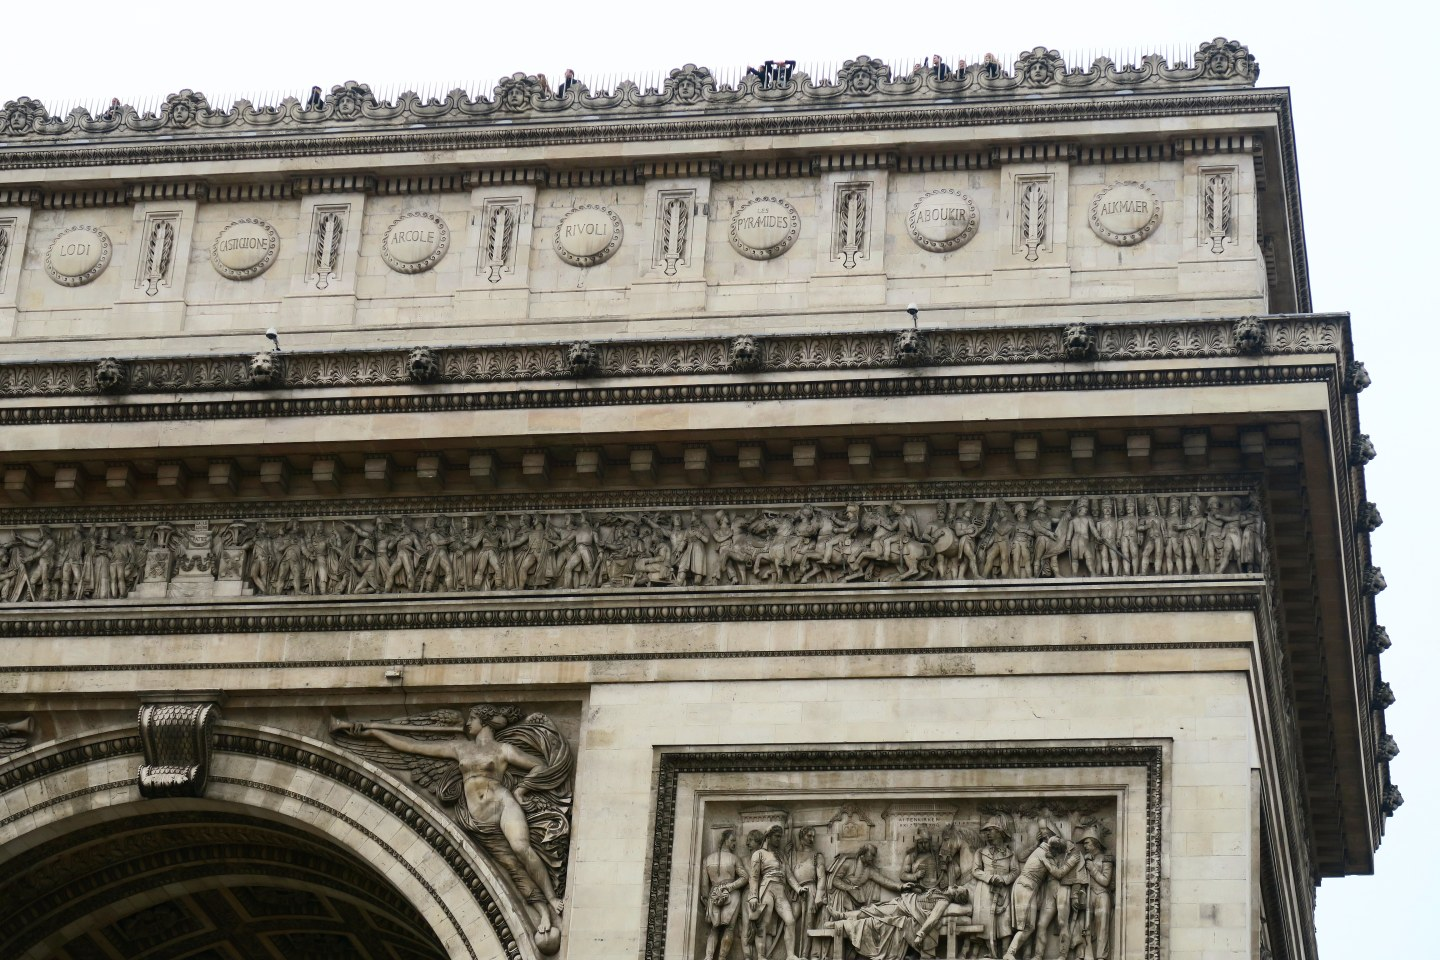 2 days in Paris - arc de triomphe